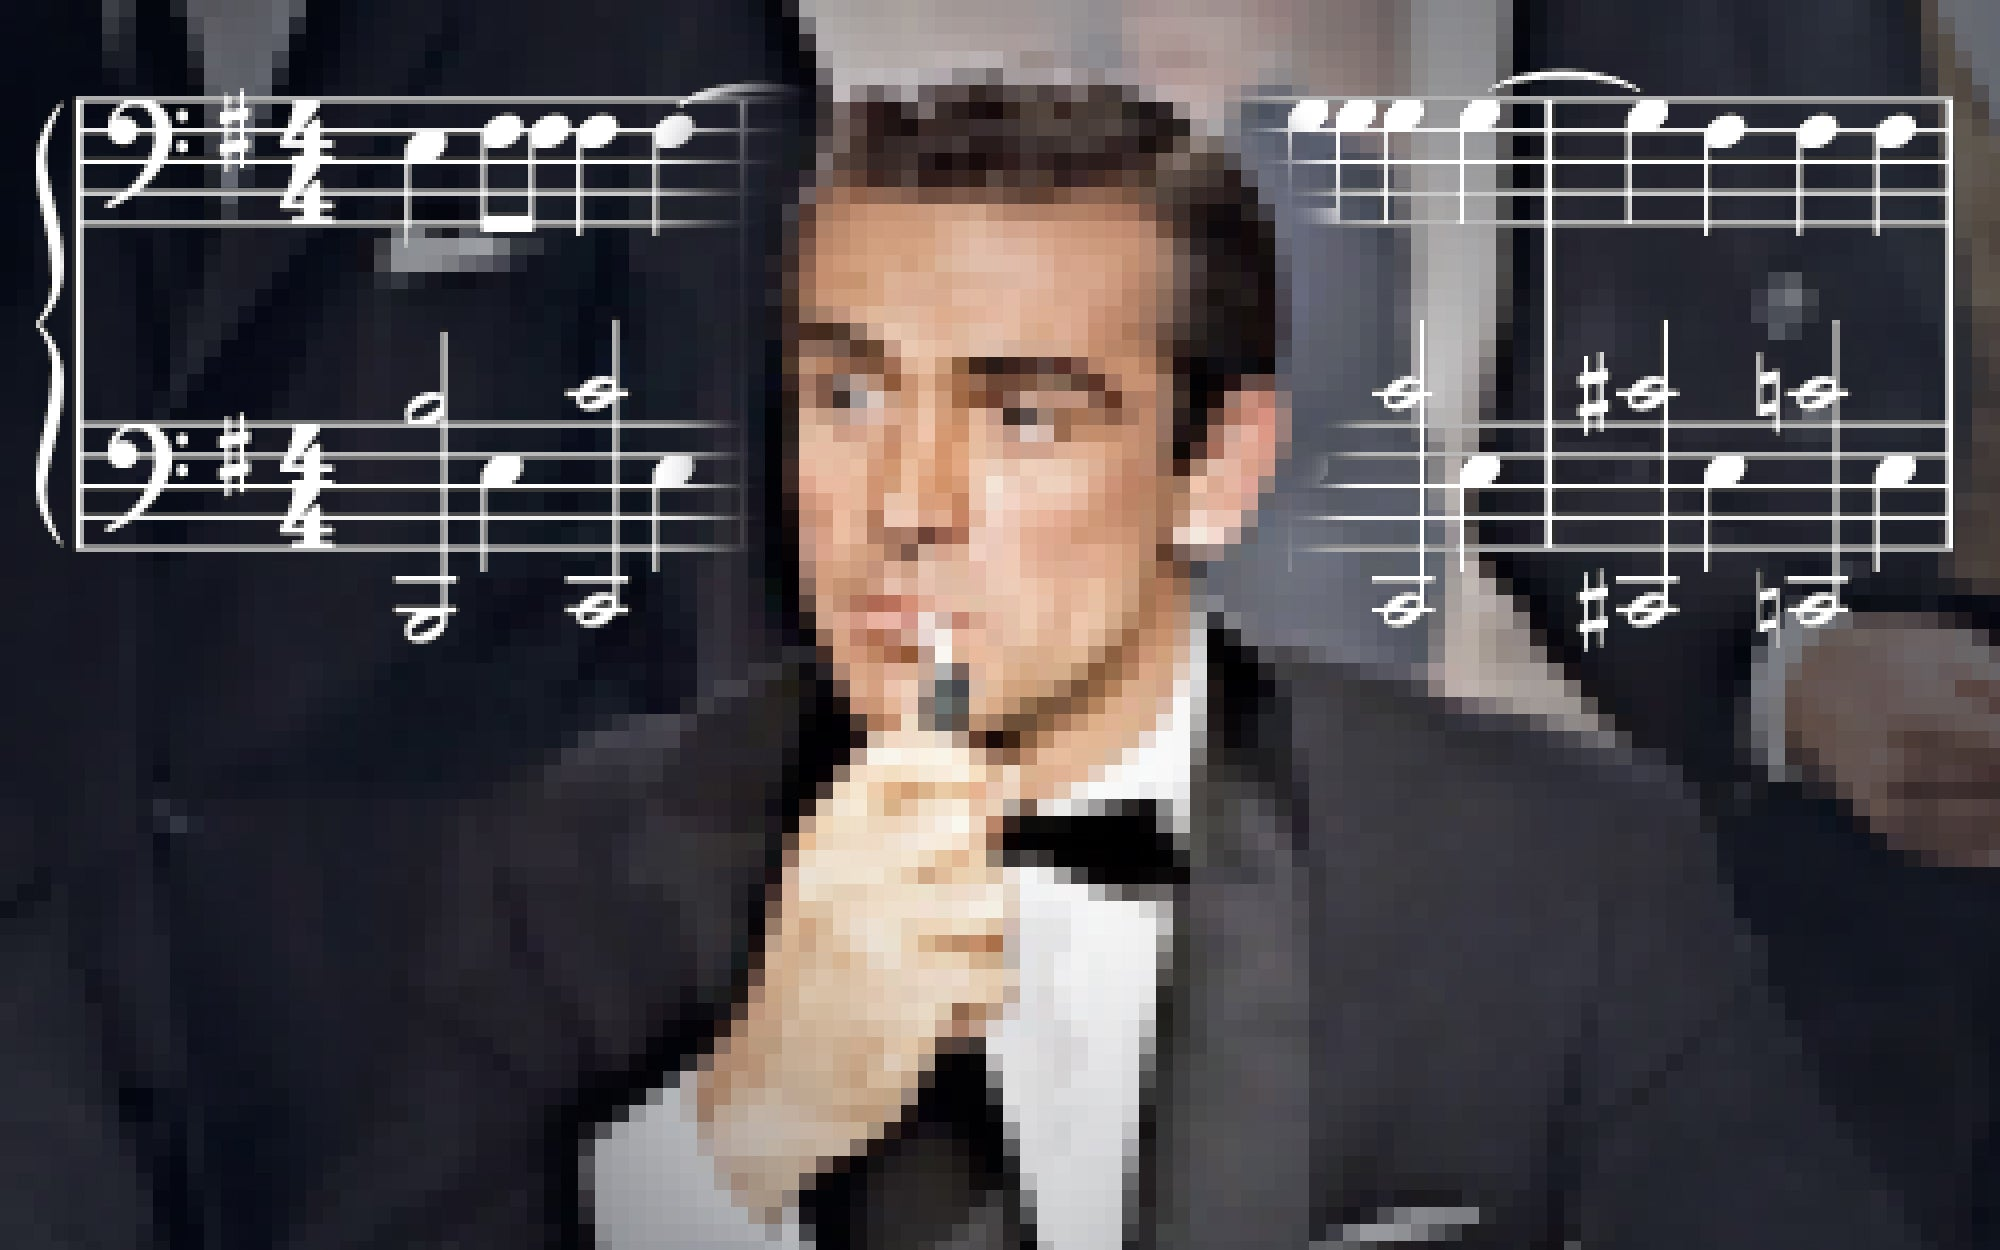 Chase Bethea looks at the 007 chord progression in video games